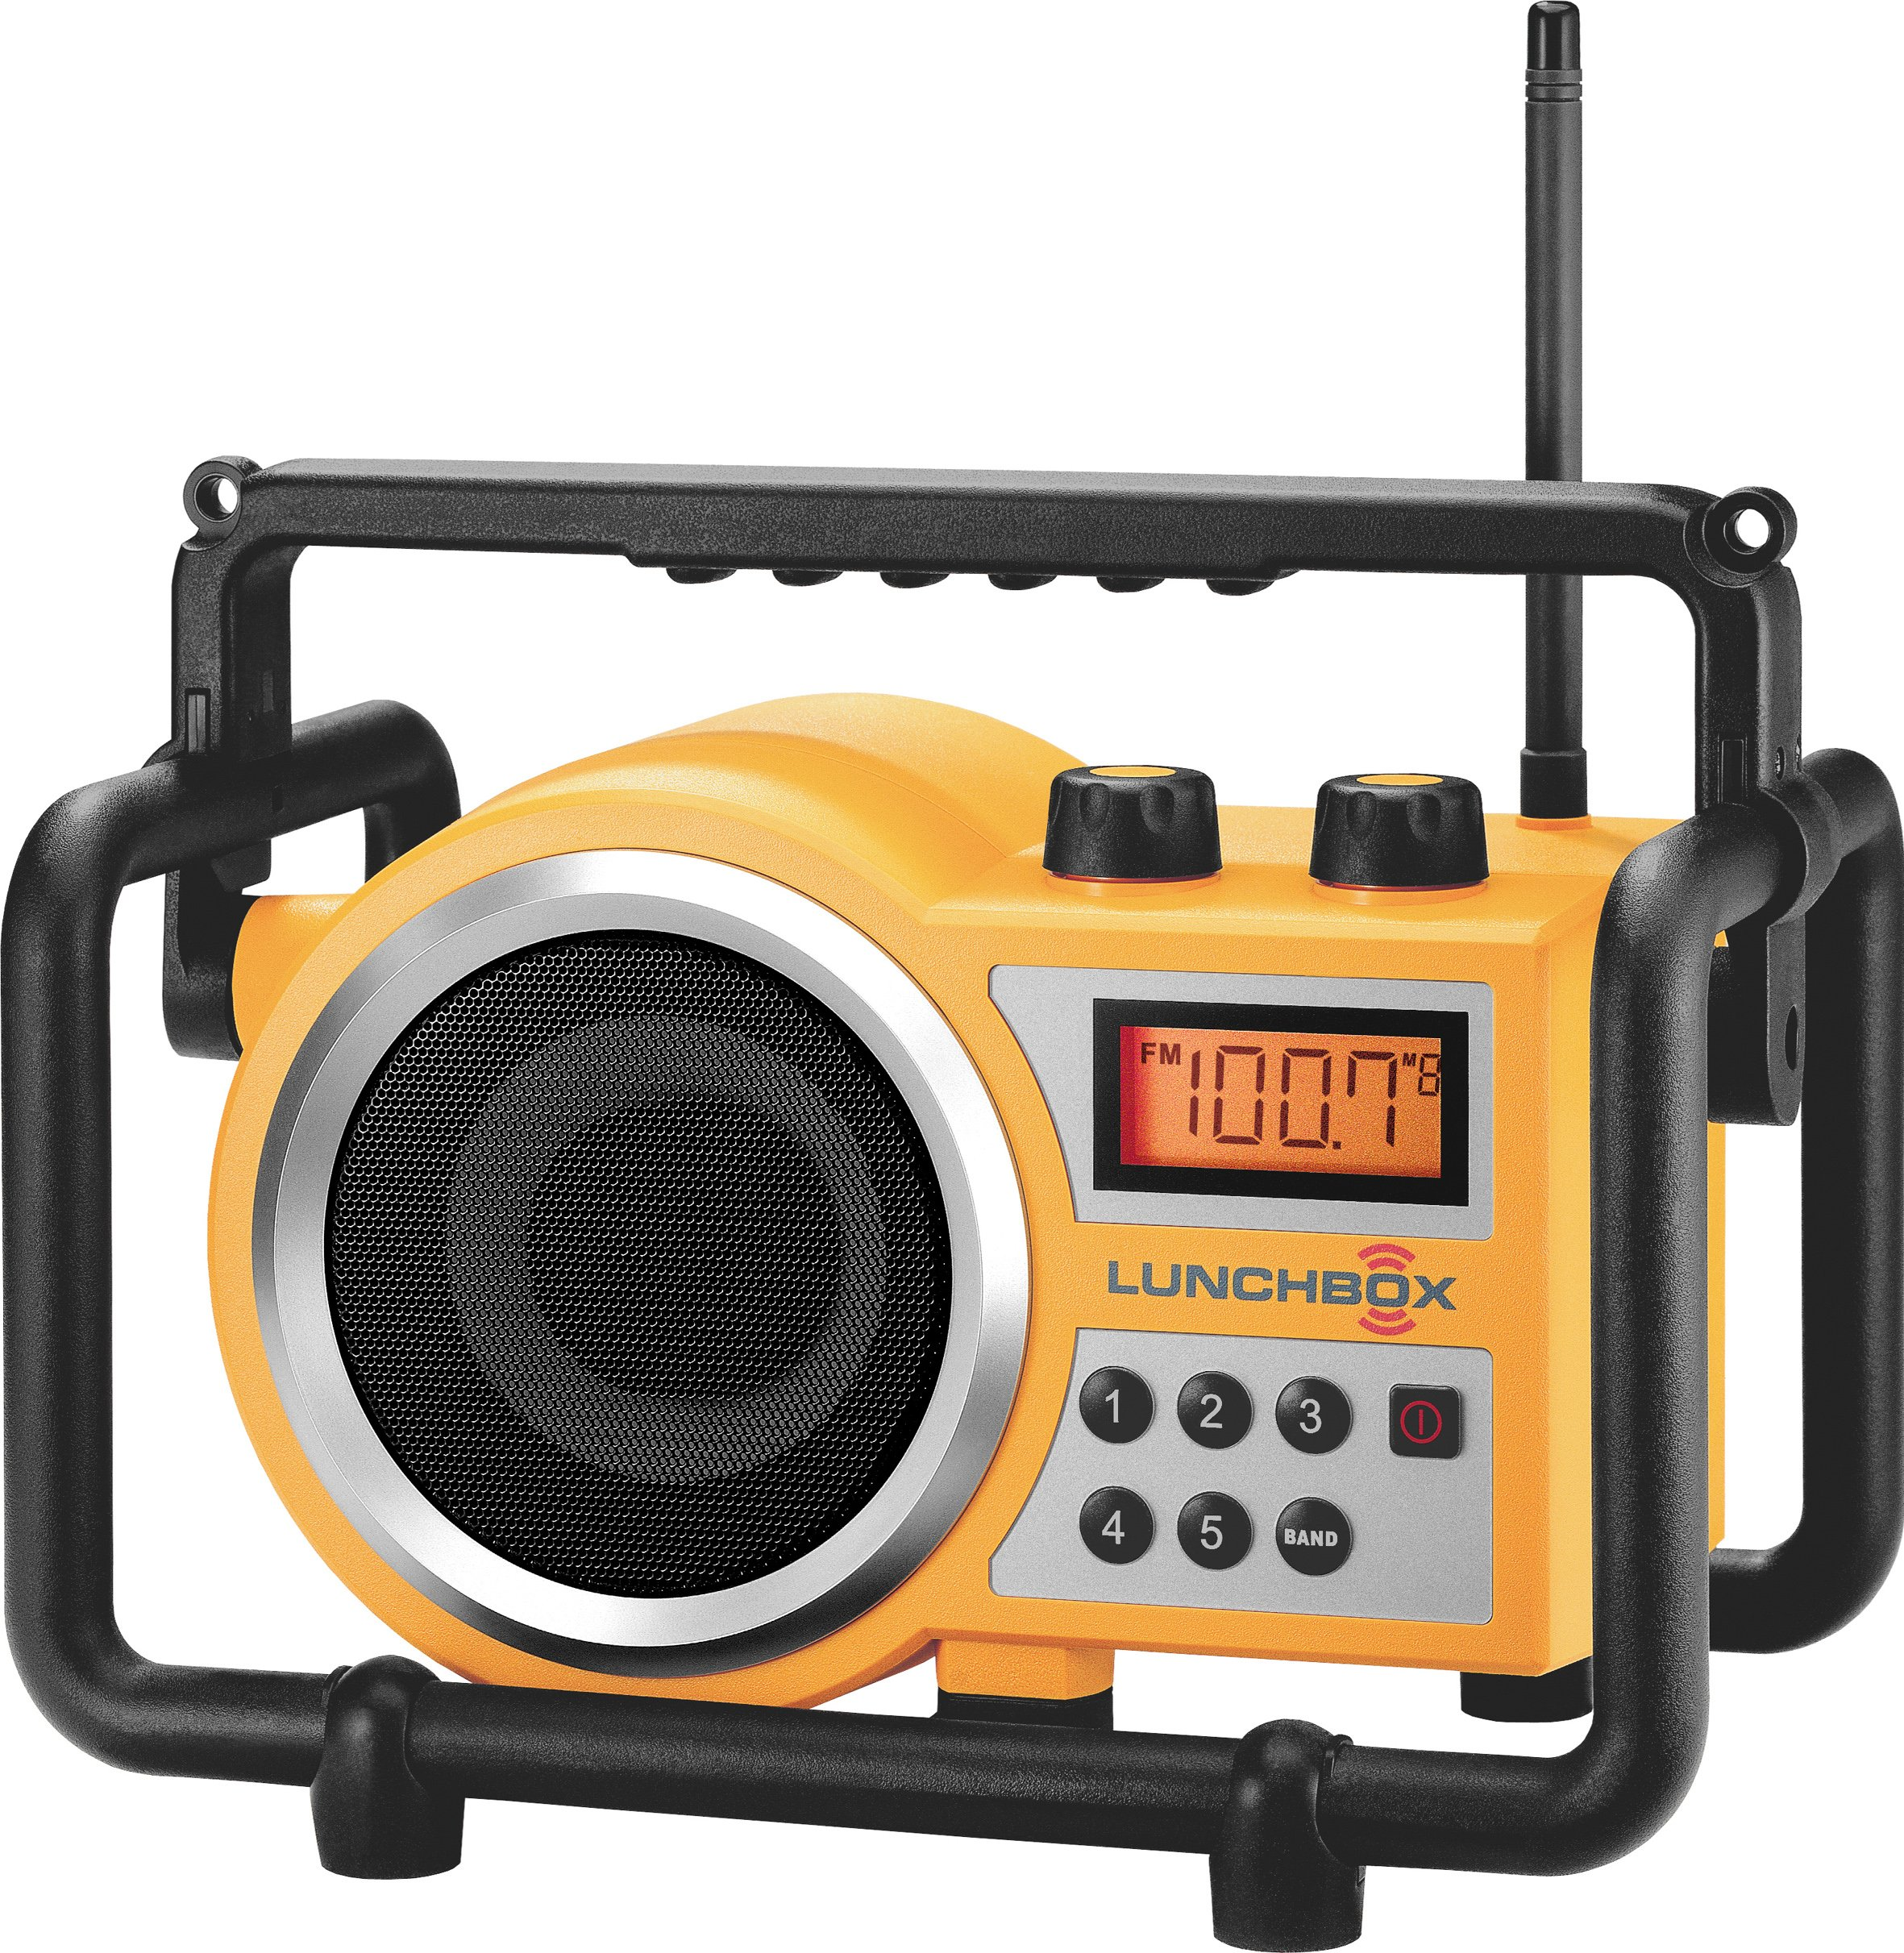 Best Rated In Portable Radios Helpful Customer Reviews Am Fm Sw Active Antenna Sangean Lb 100 Compact Ultra Rugged Radio Receiver Product Image